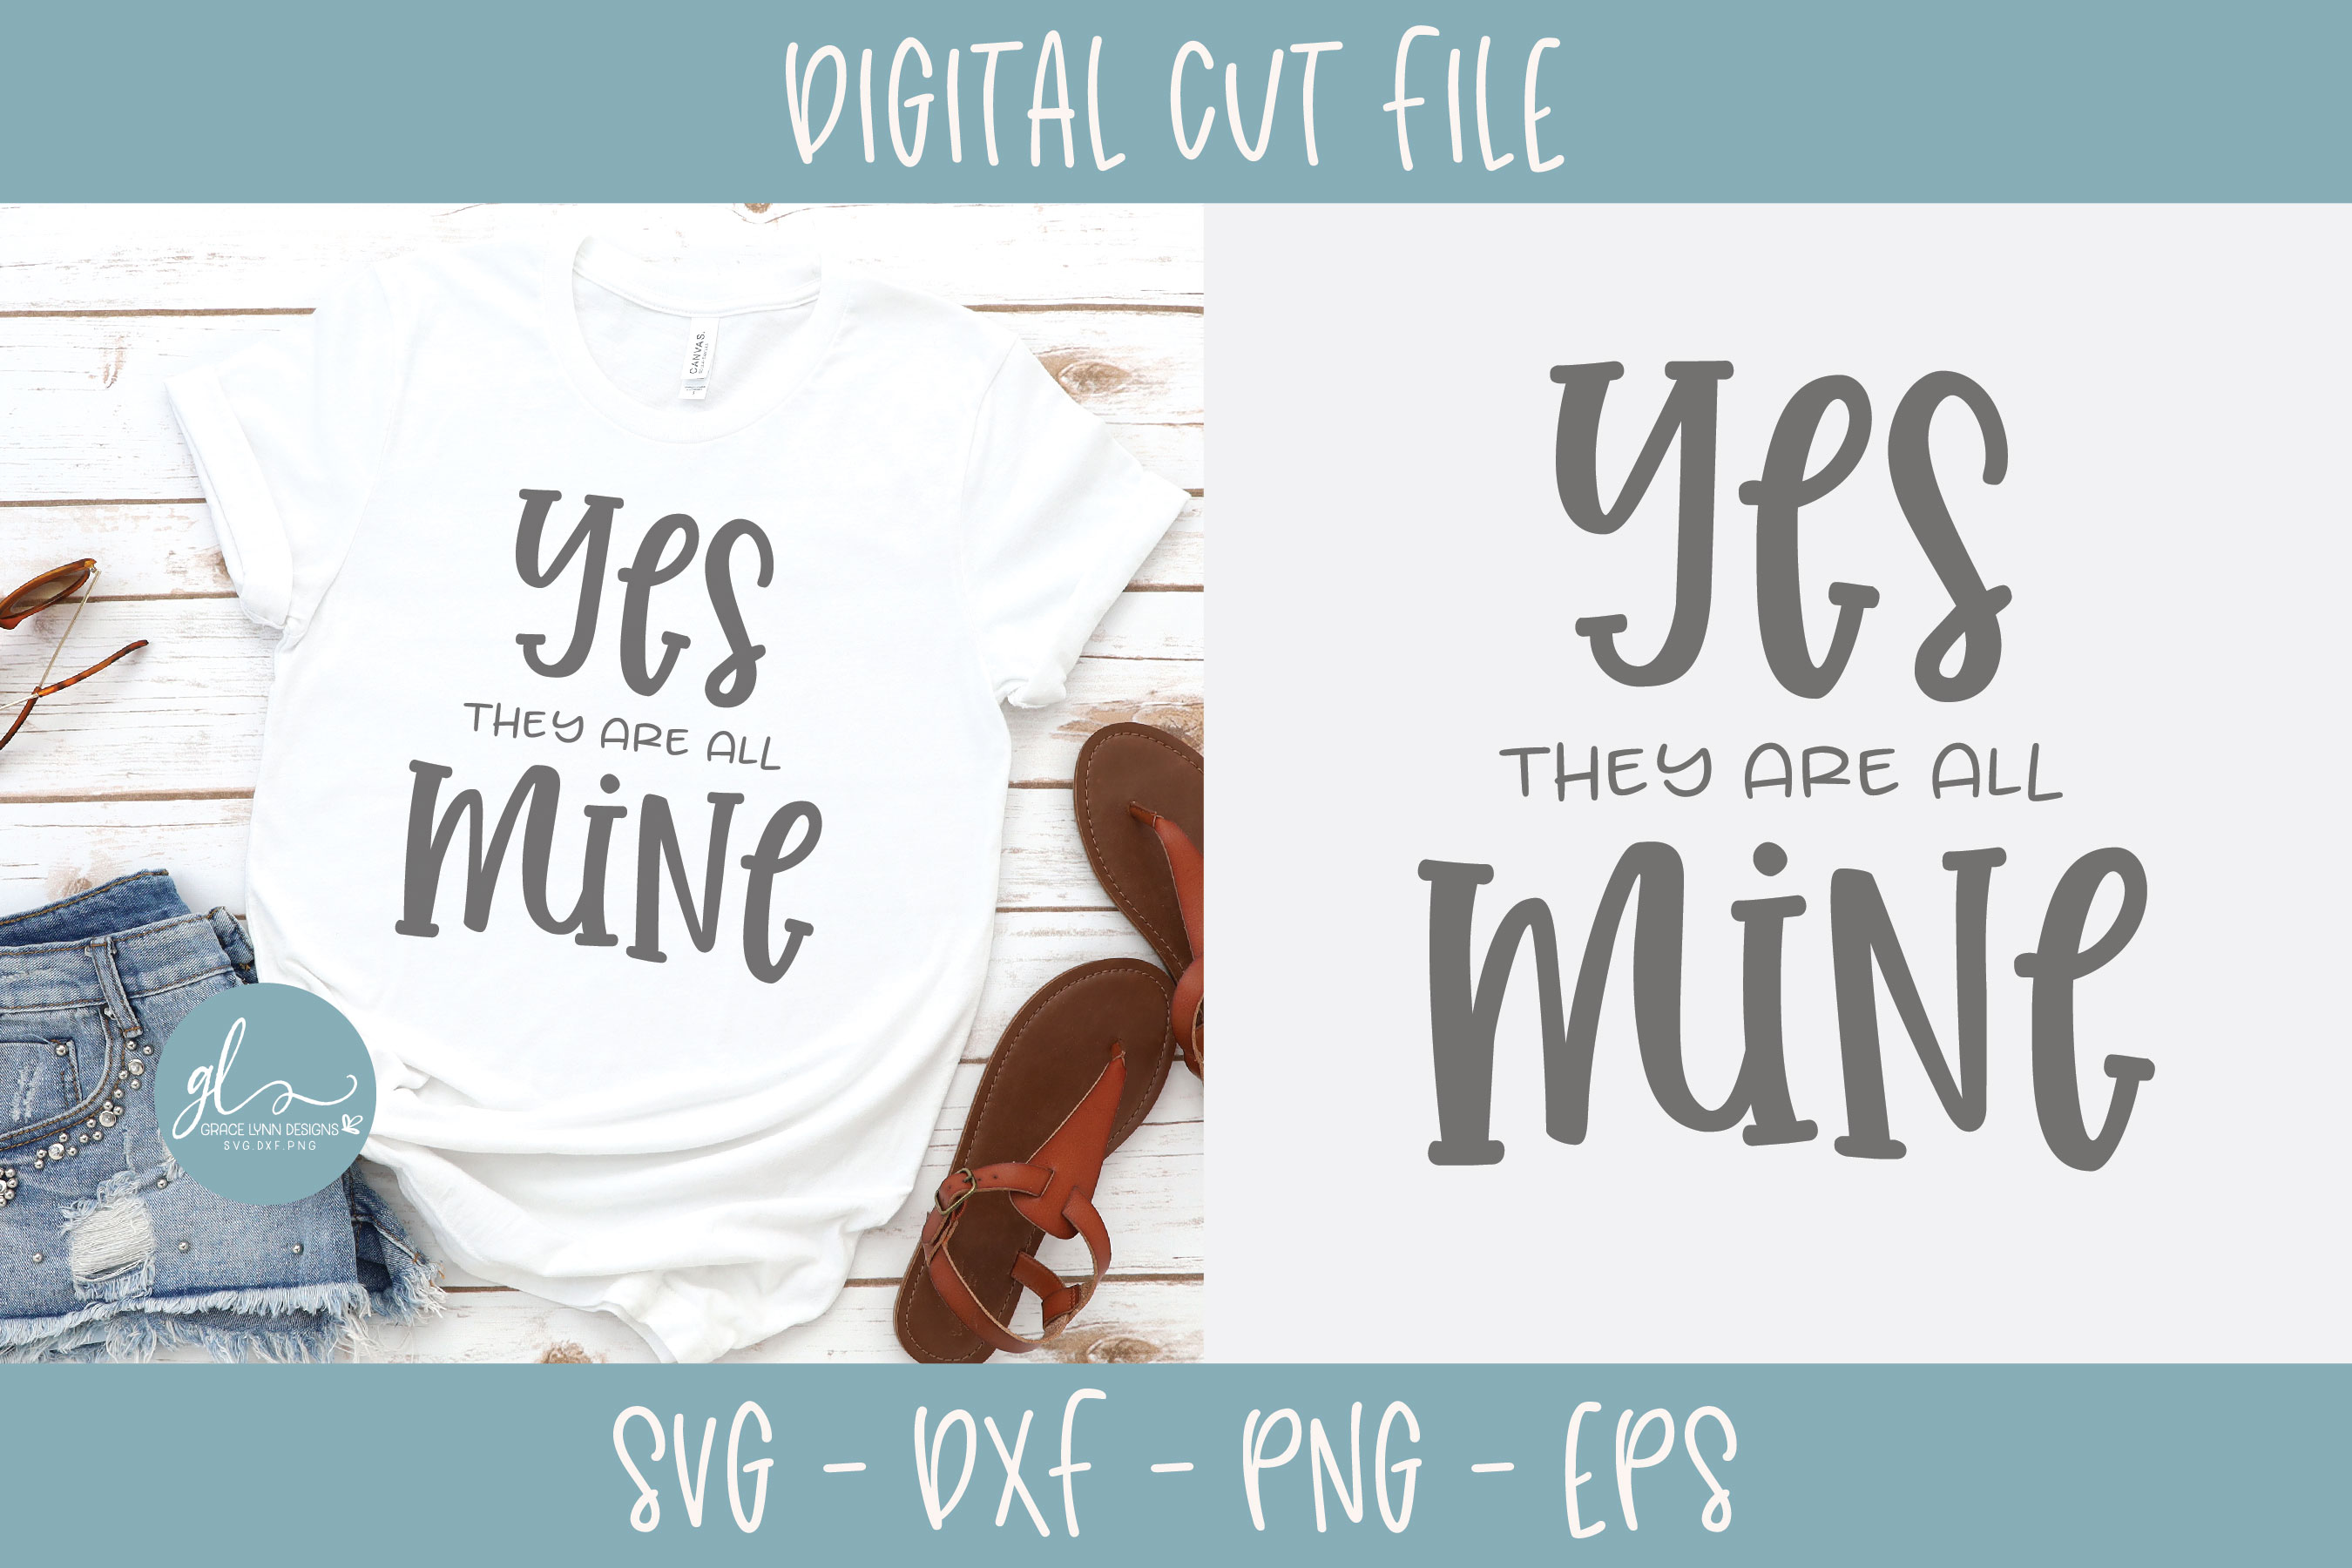 Yes They Are All Mine - SVG Cut File example image 1